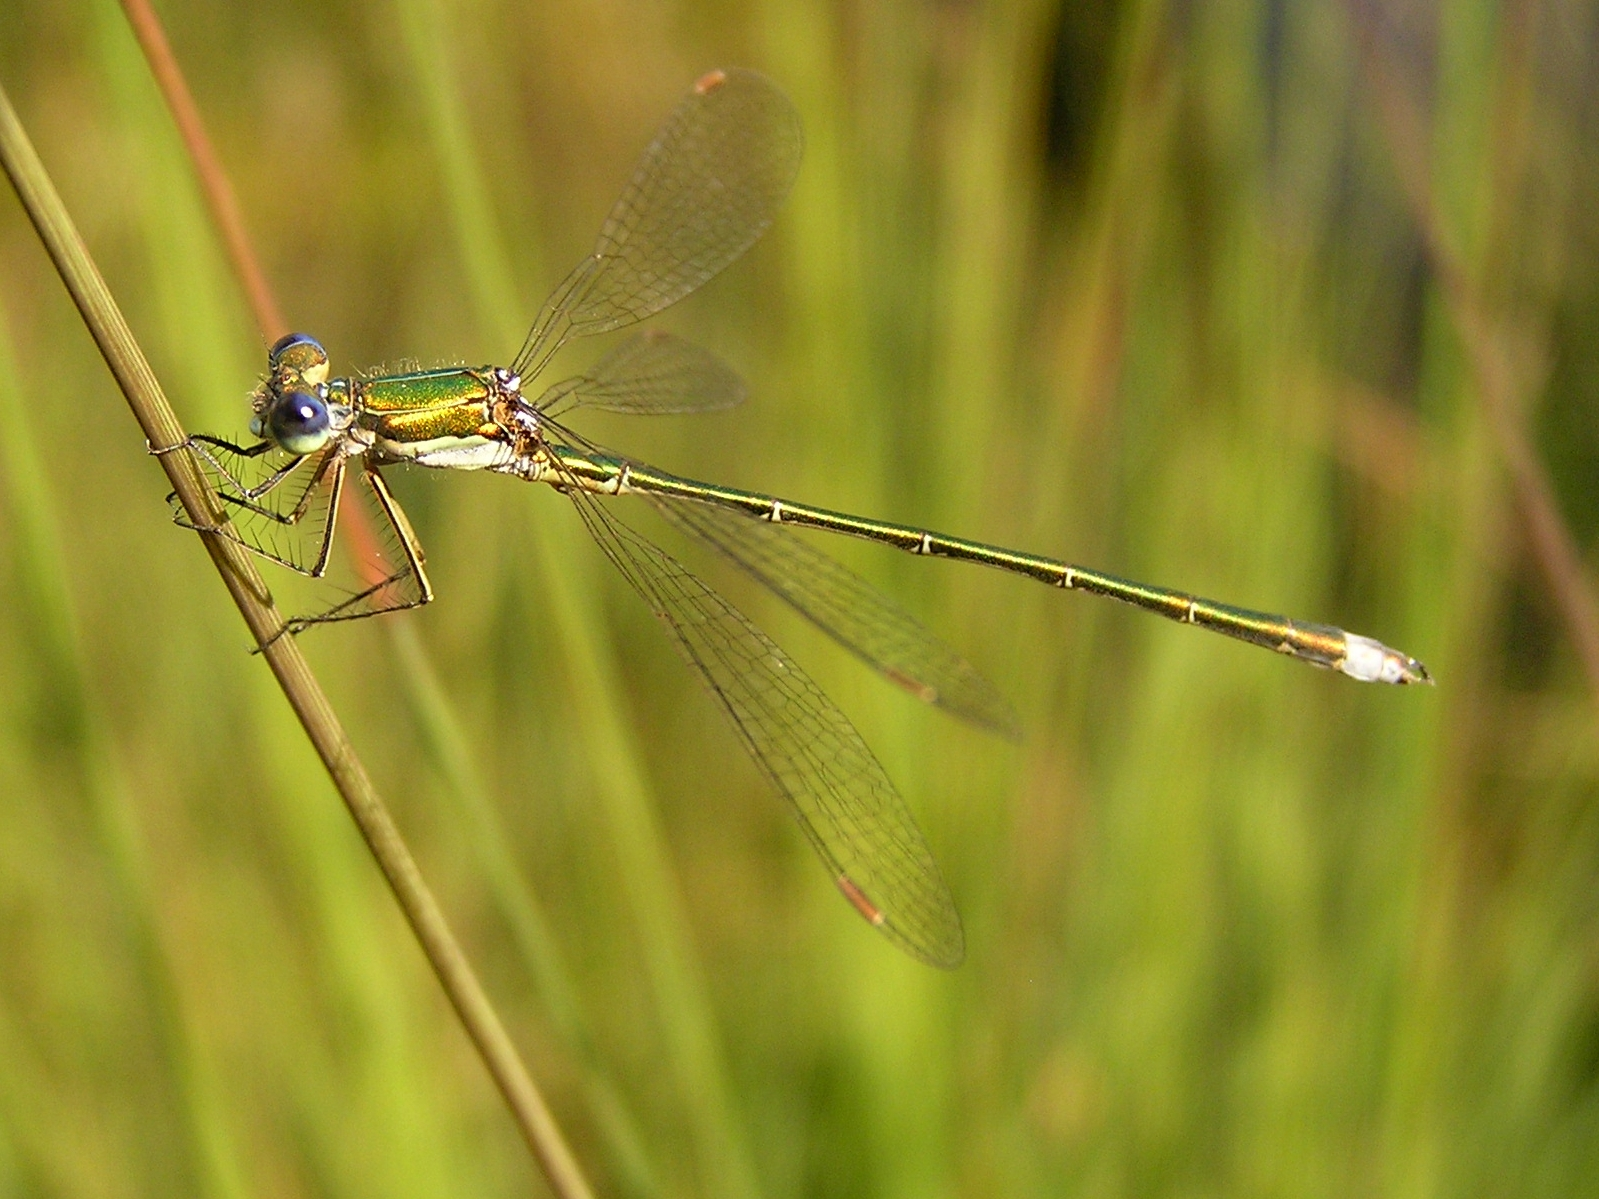 https://i2.wp.com/upload.wikimedia.org/wikipedia/commons/a/a3/Lestes_virens02.jpg